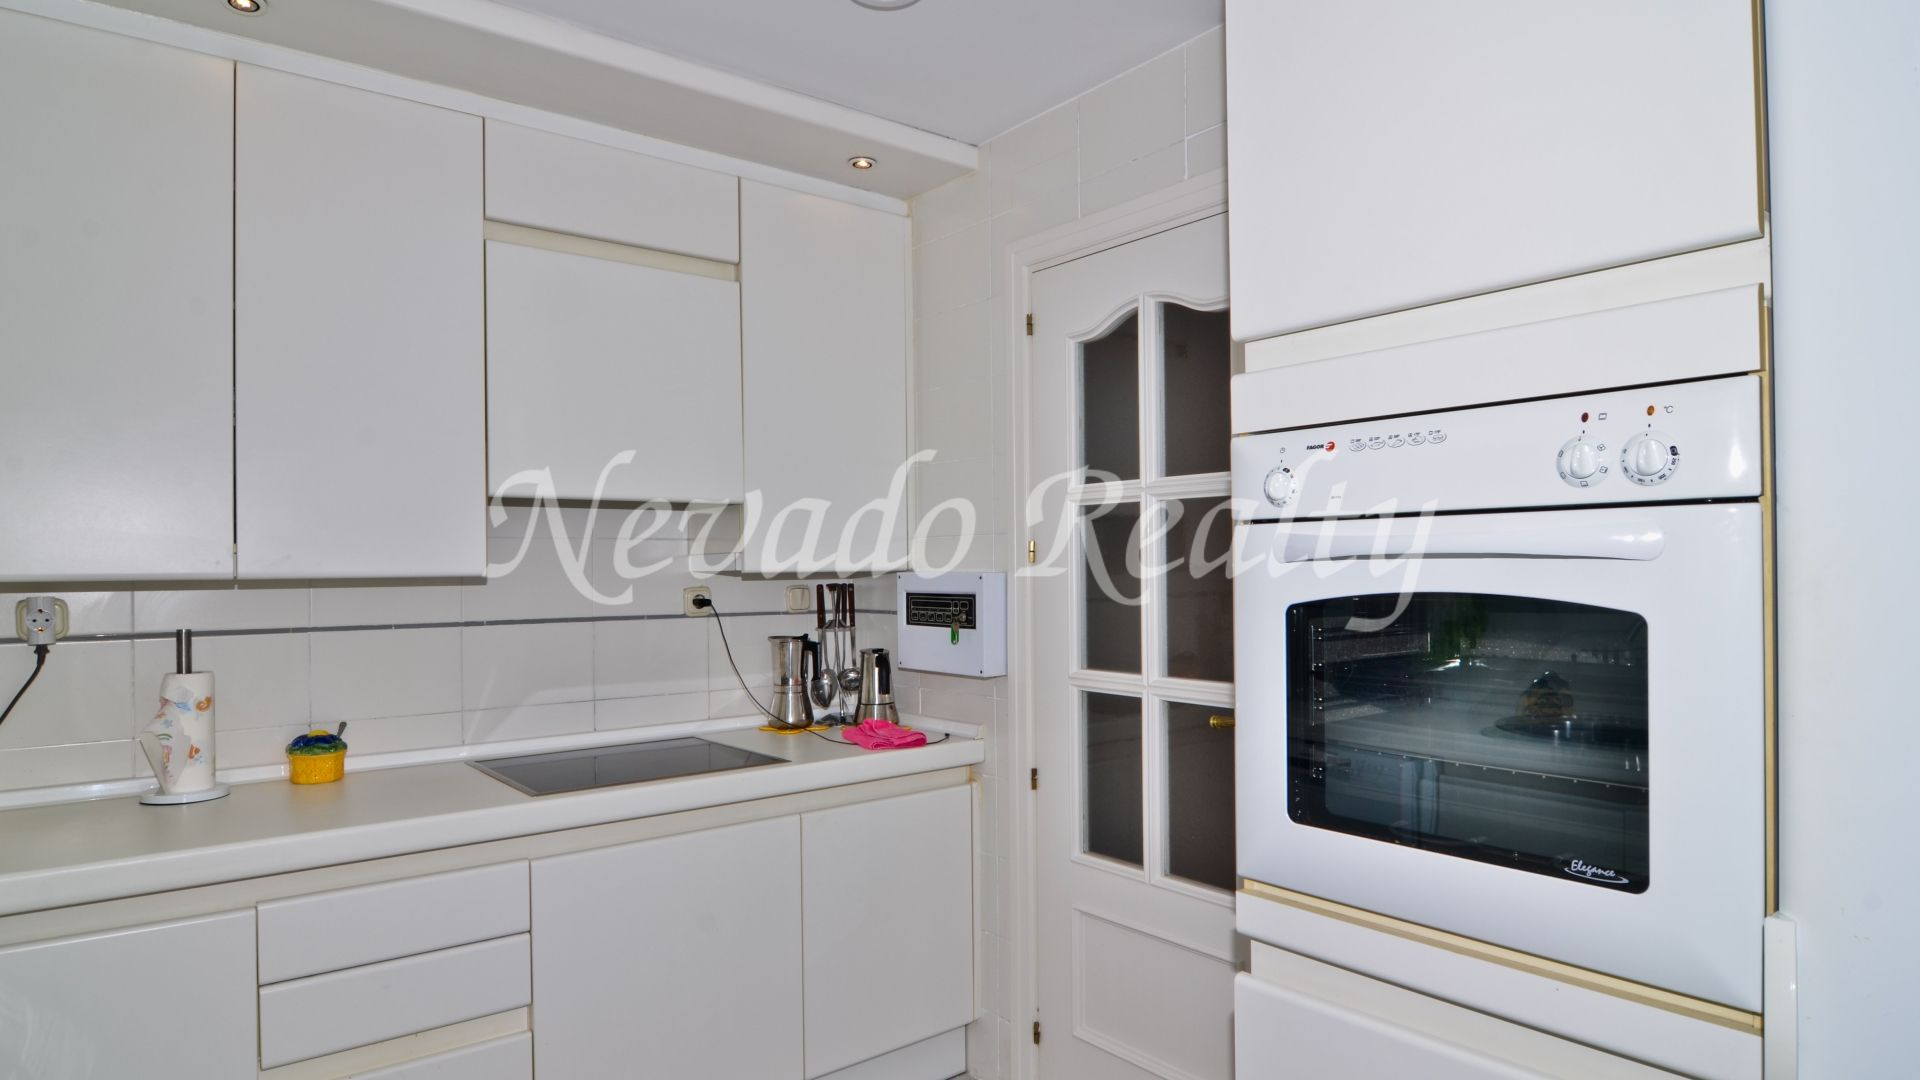 Location and privacy, second line beach apartment in Marbella Center